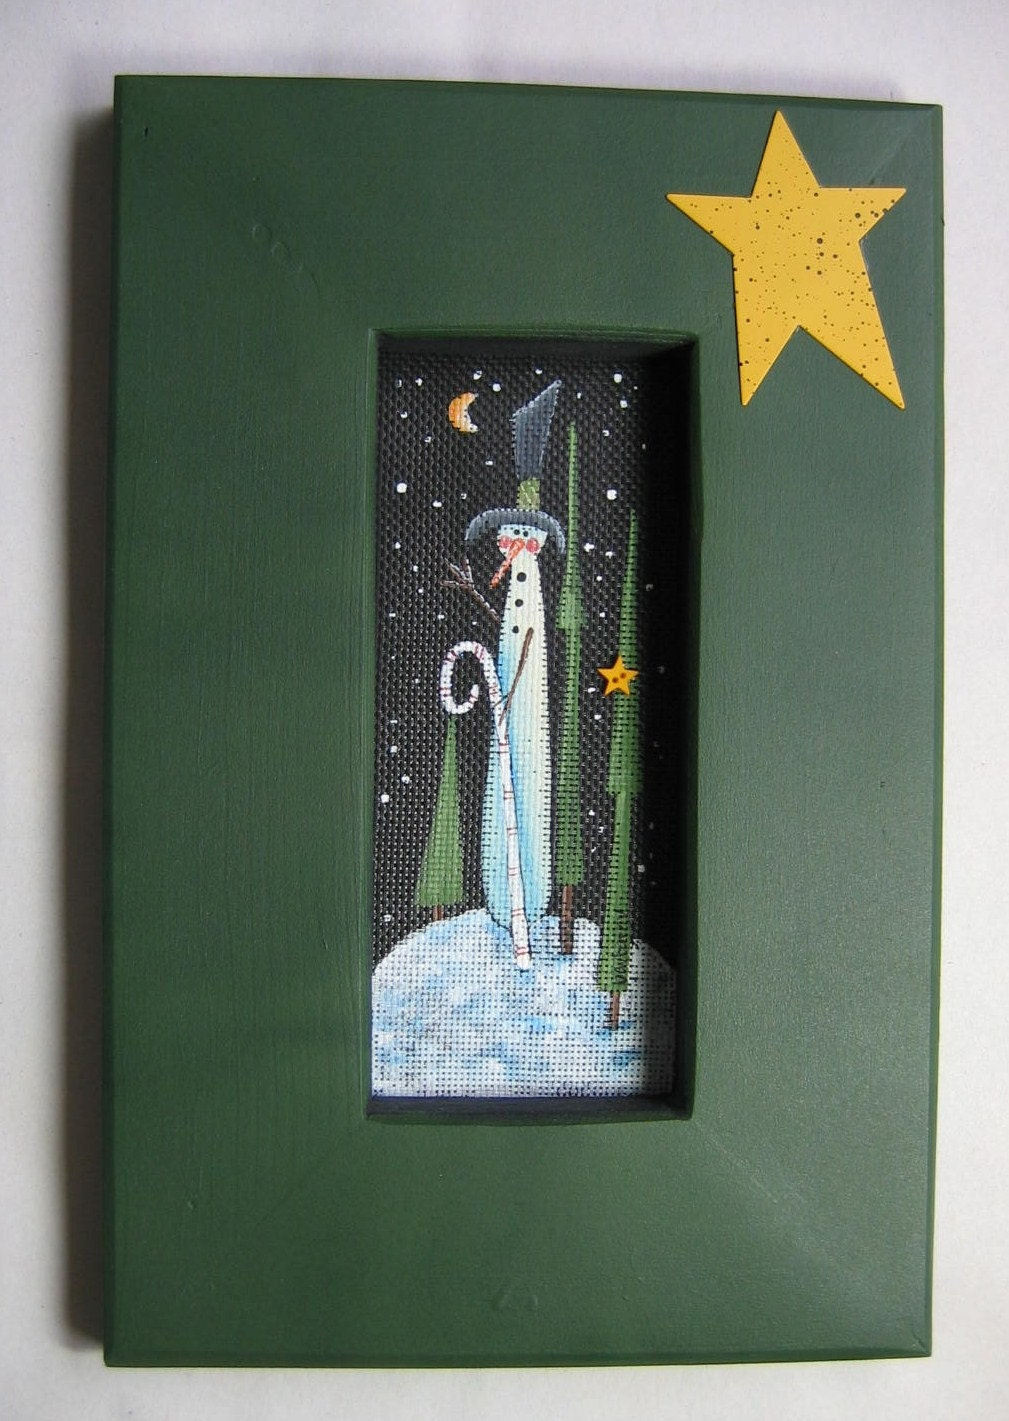 tole painted snowman with candy cane framed in green